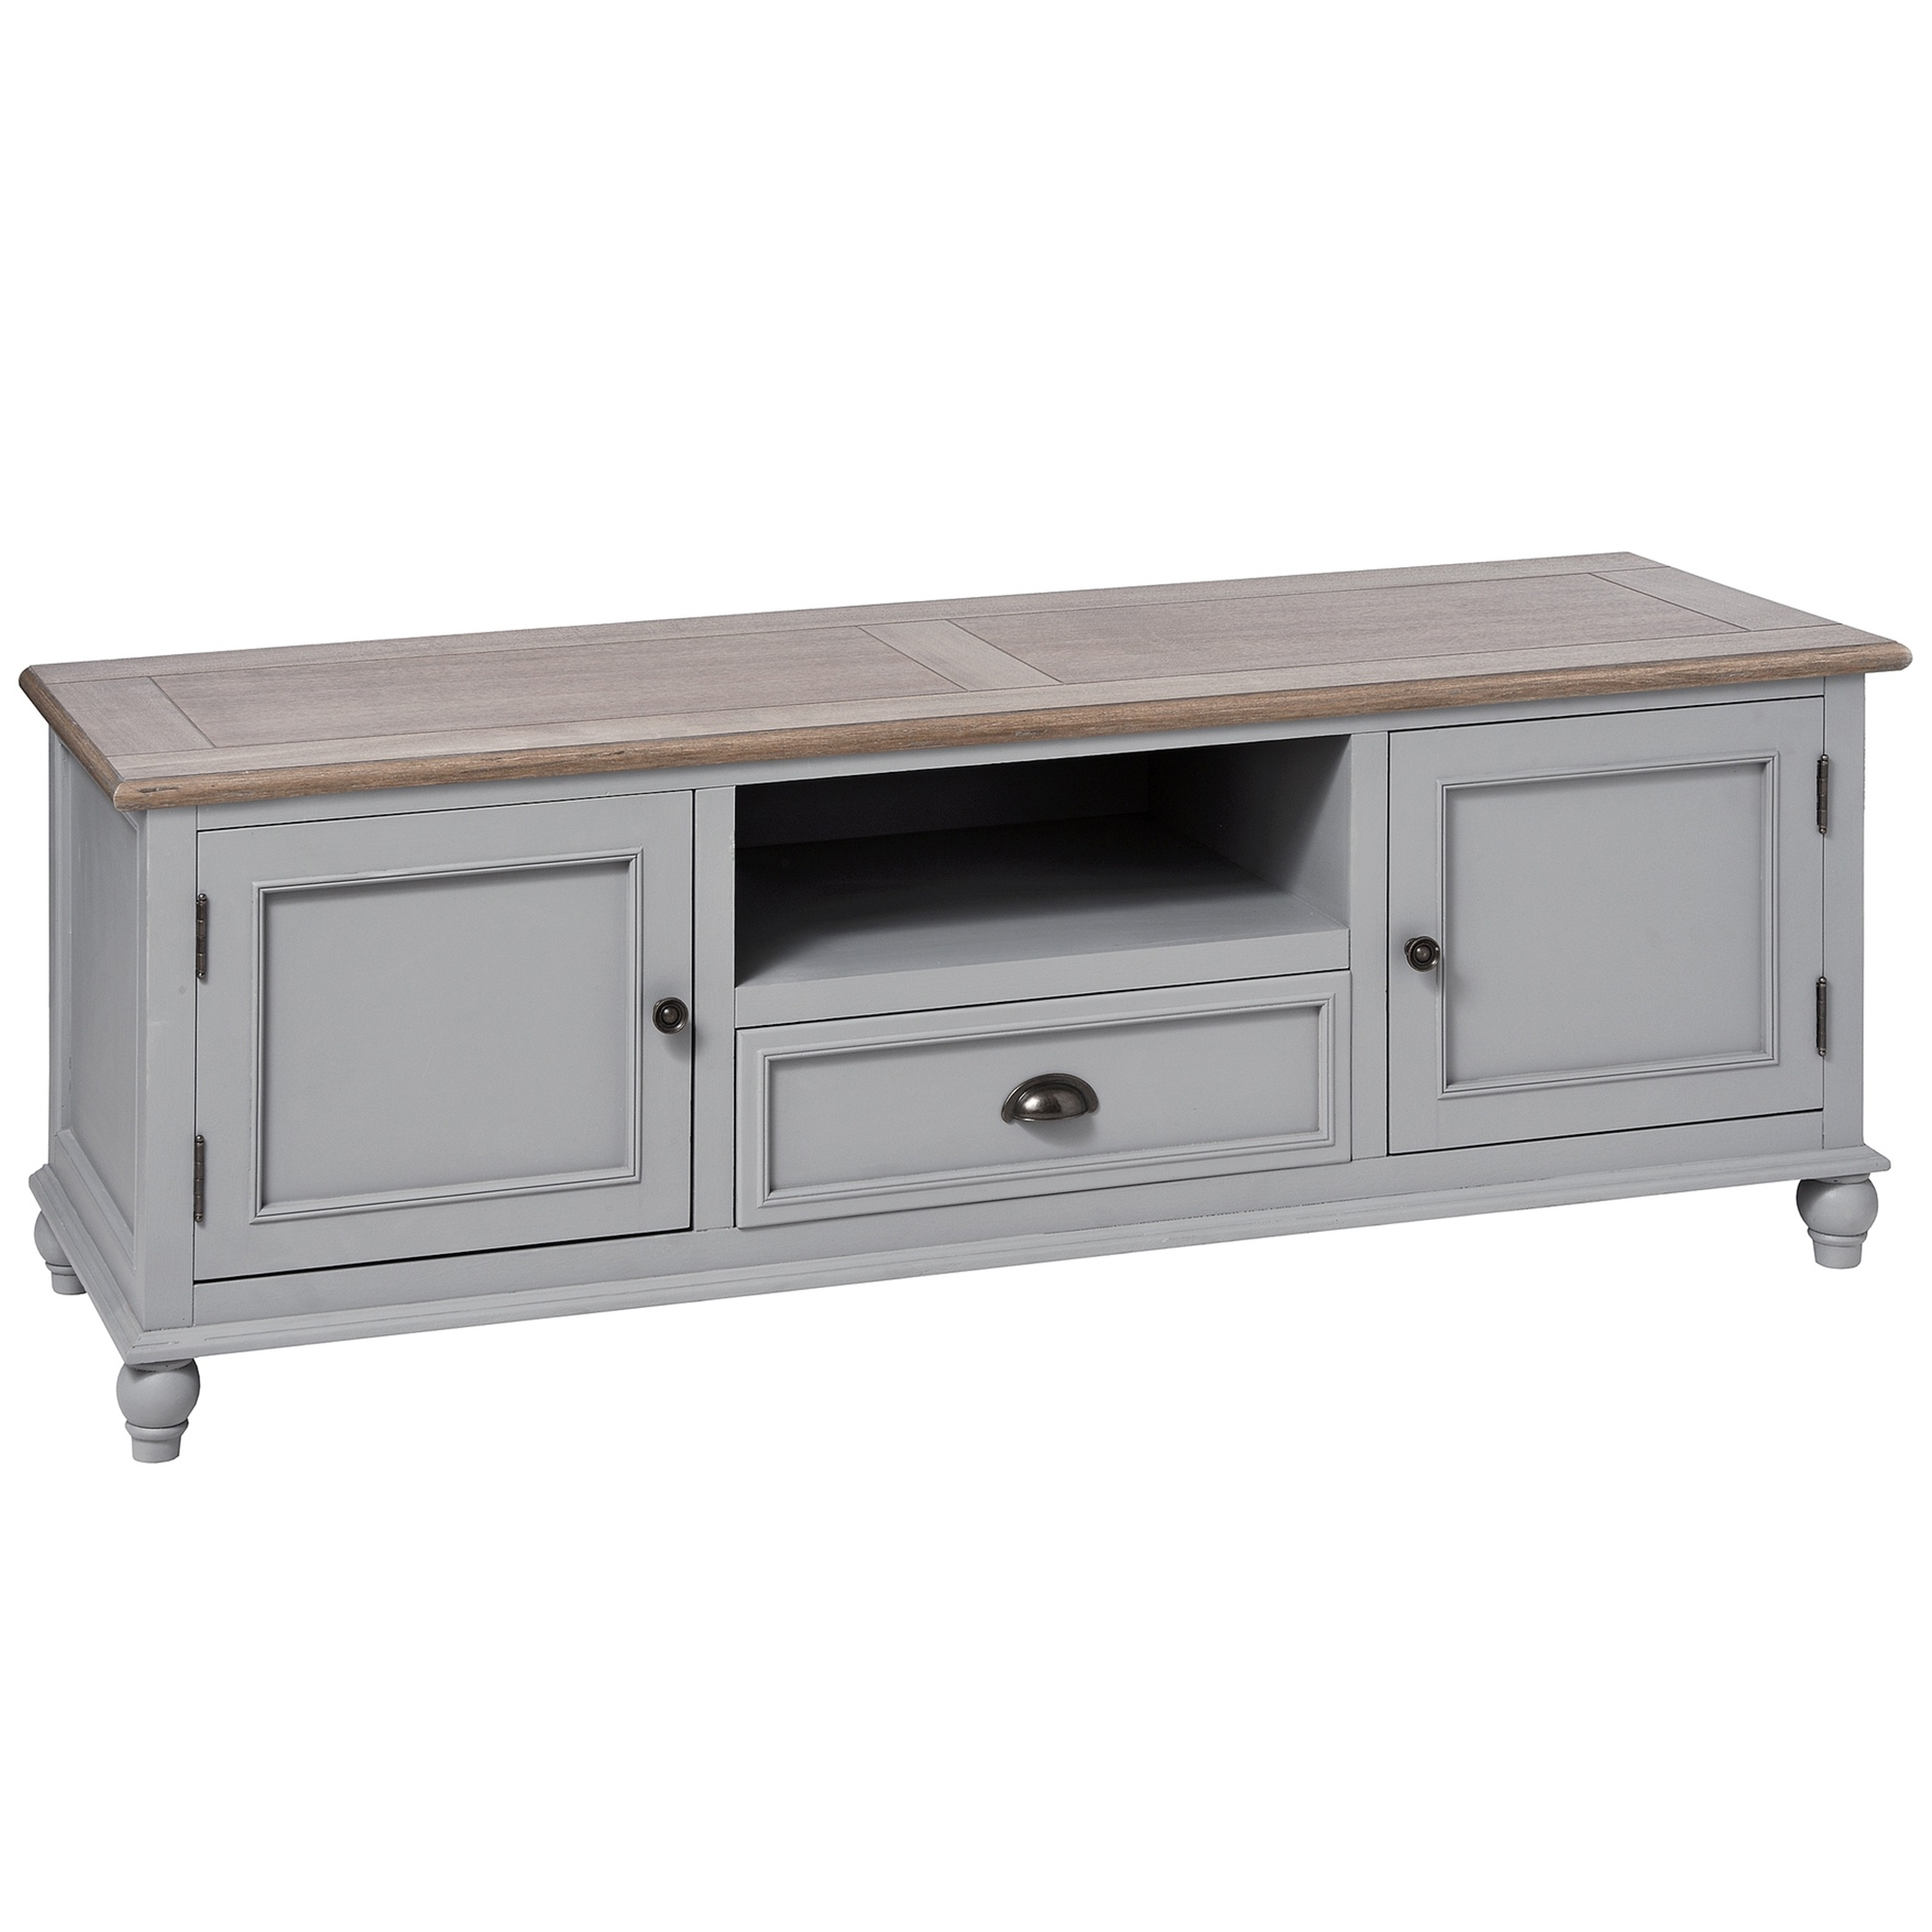 churchill shabby chic tv cabinet available now. Black Bedroom Furniture Sets. Home Design Ideas